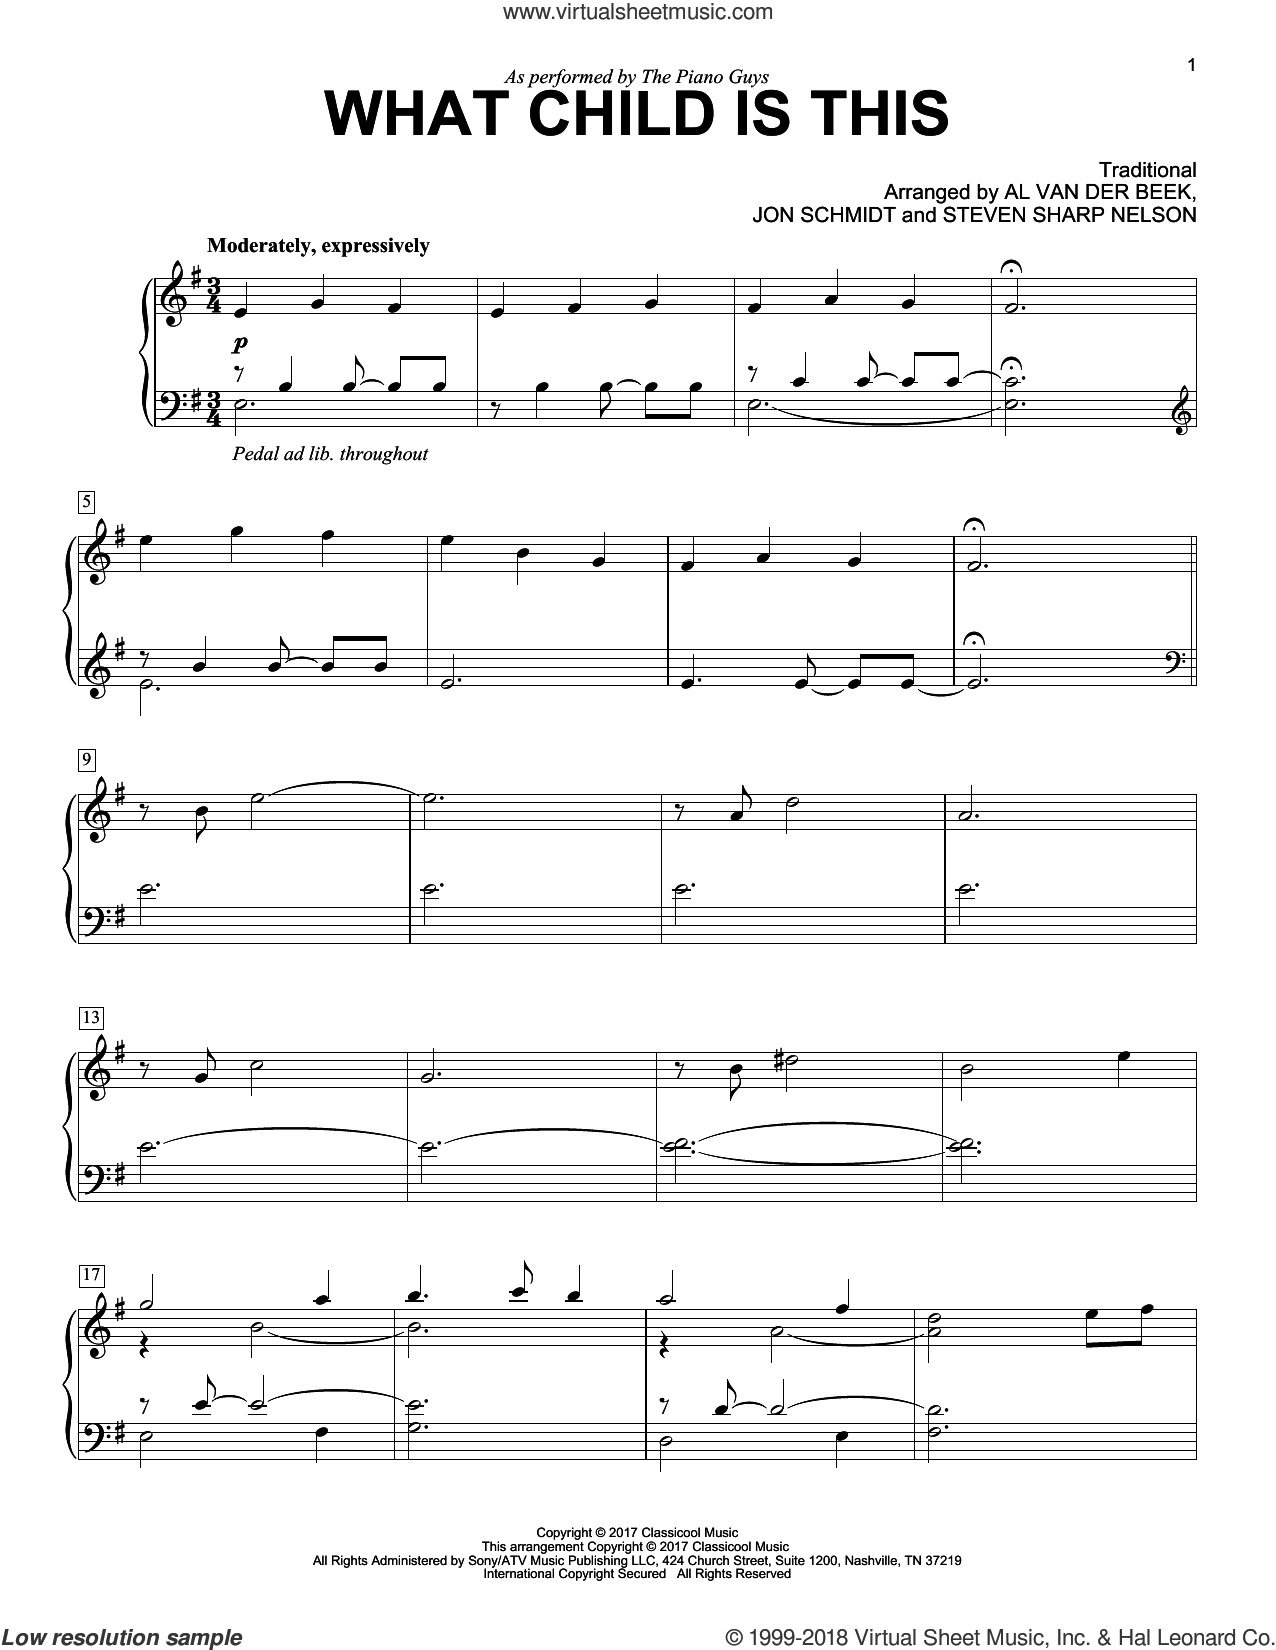 What Child Is This sheet music for piano solo by The Piano Guys, Al van der Beek (arr.), Jon Schmidt (arr.) and Steven Sharp Nelson (arr.), intermediate skill level